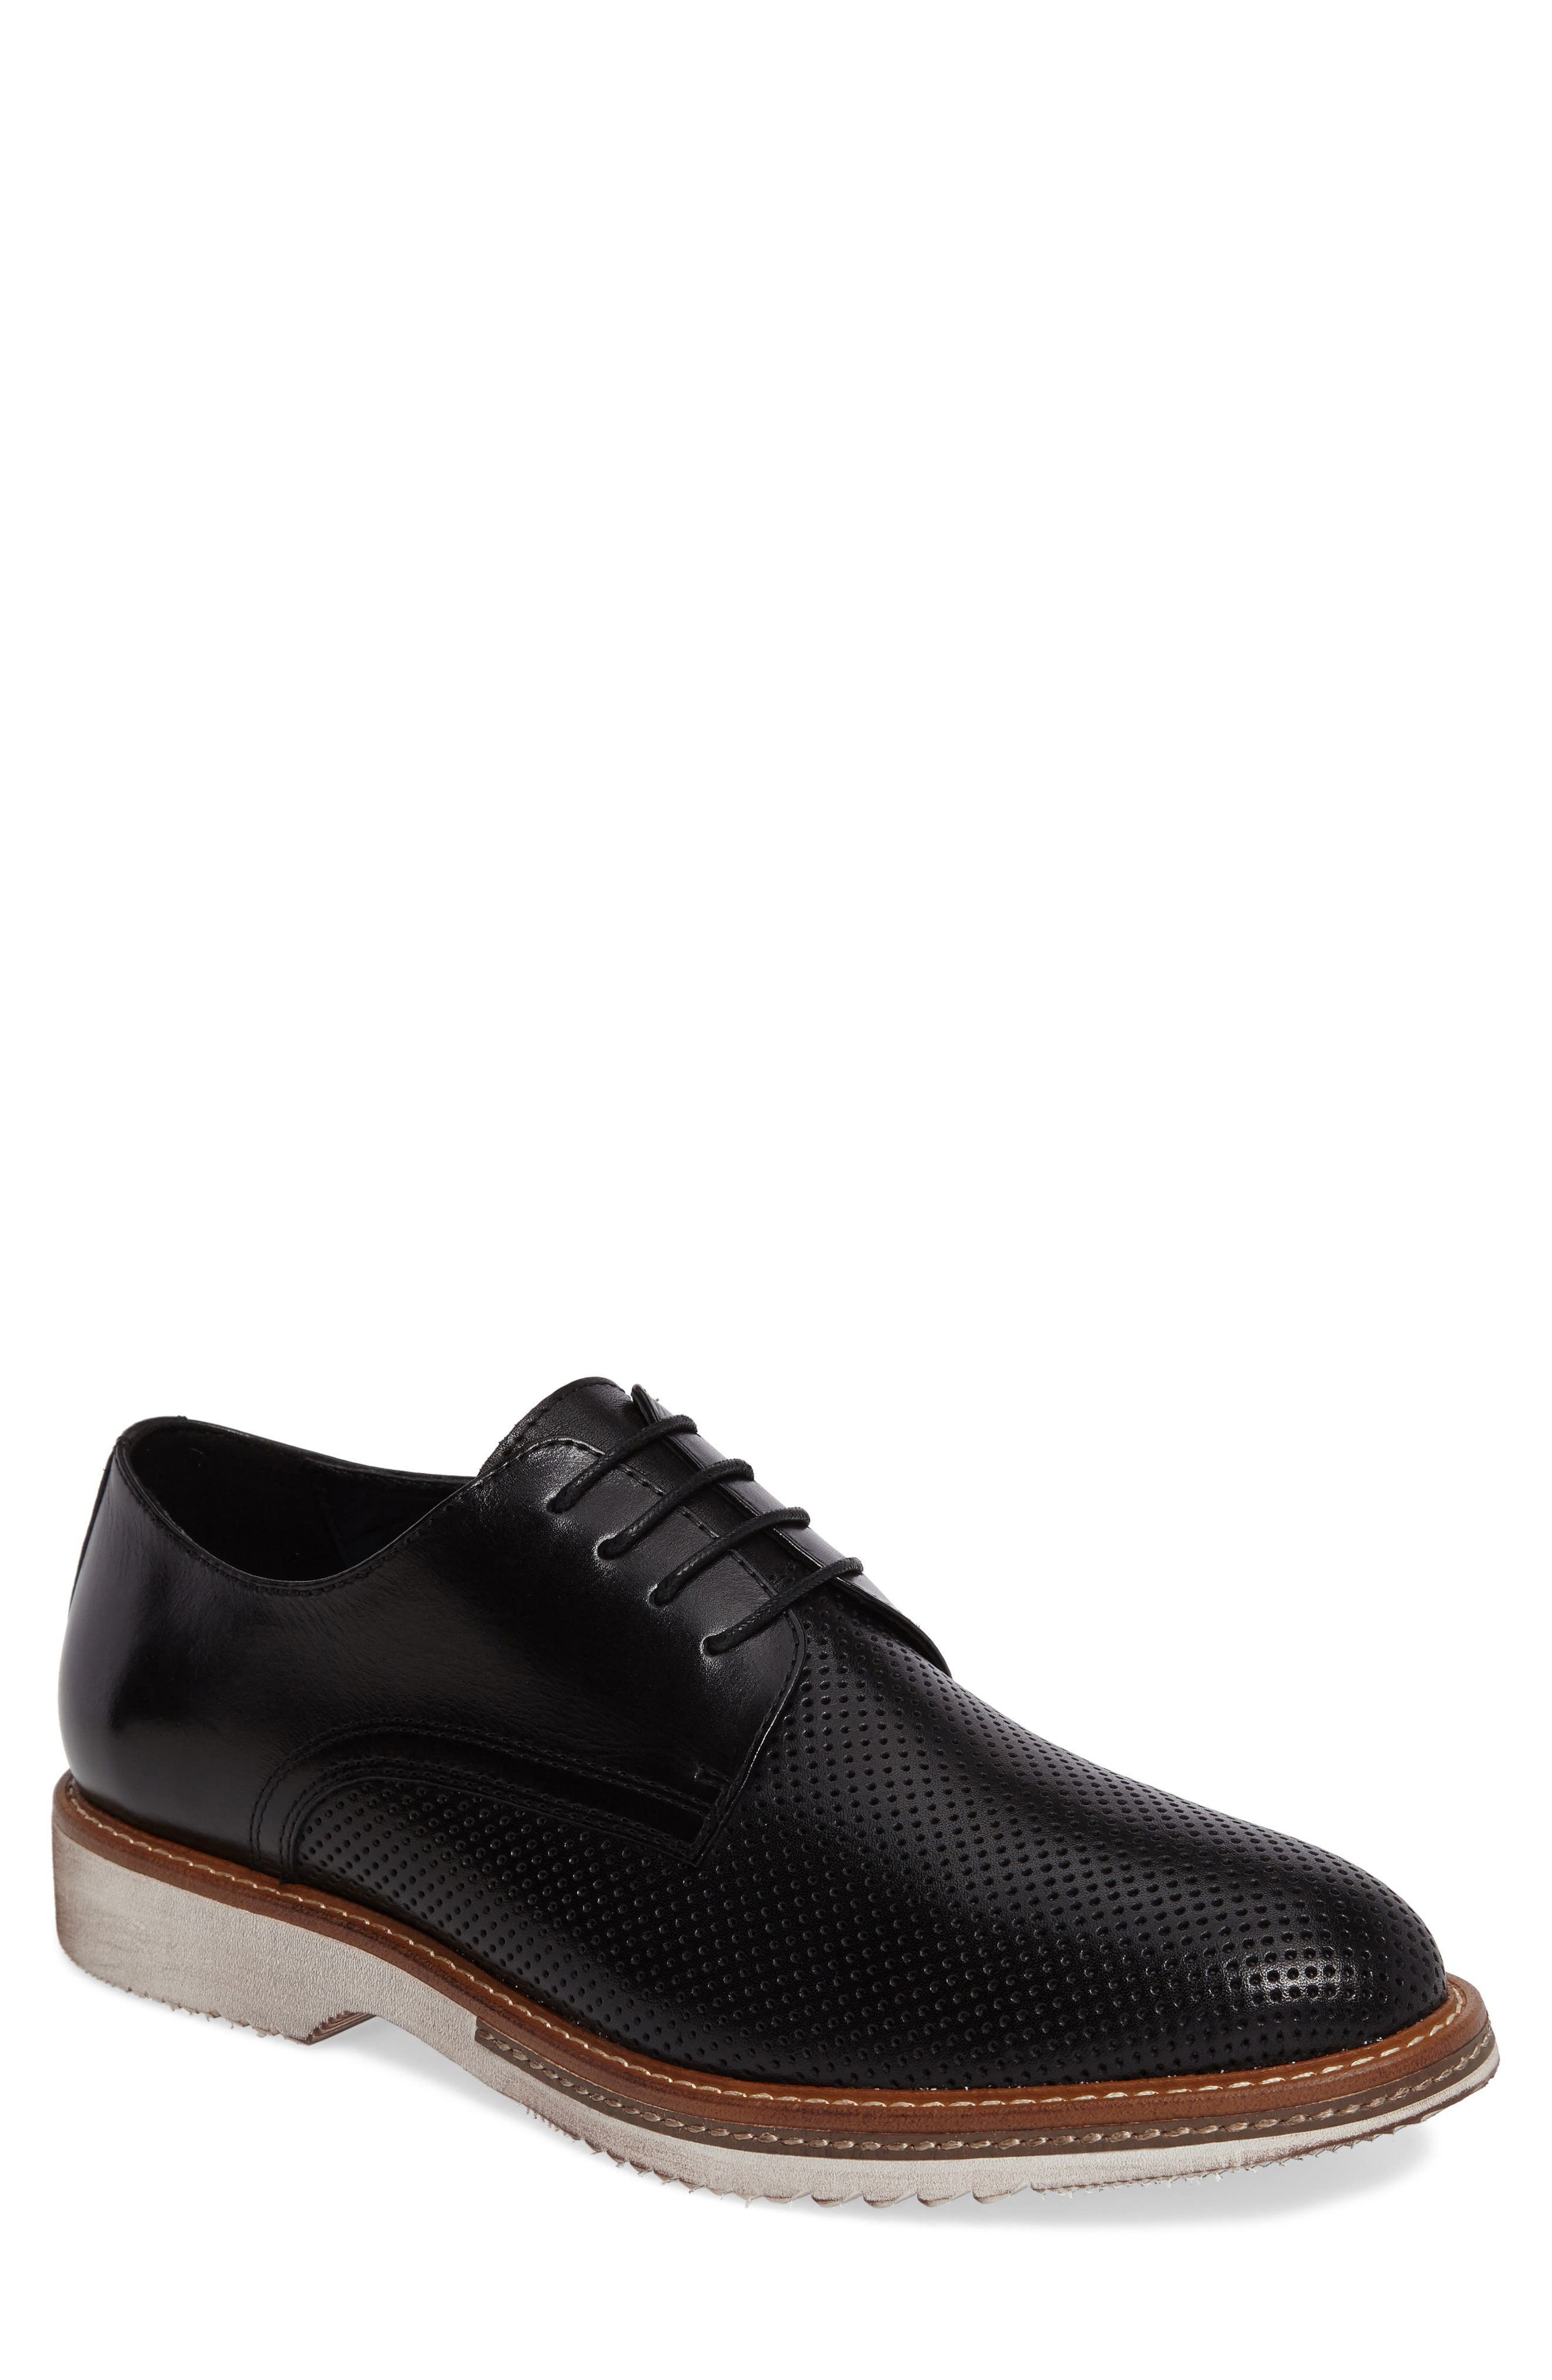 English Laundry Northwood Perforated Derby (Men)